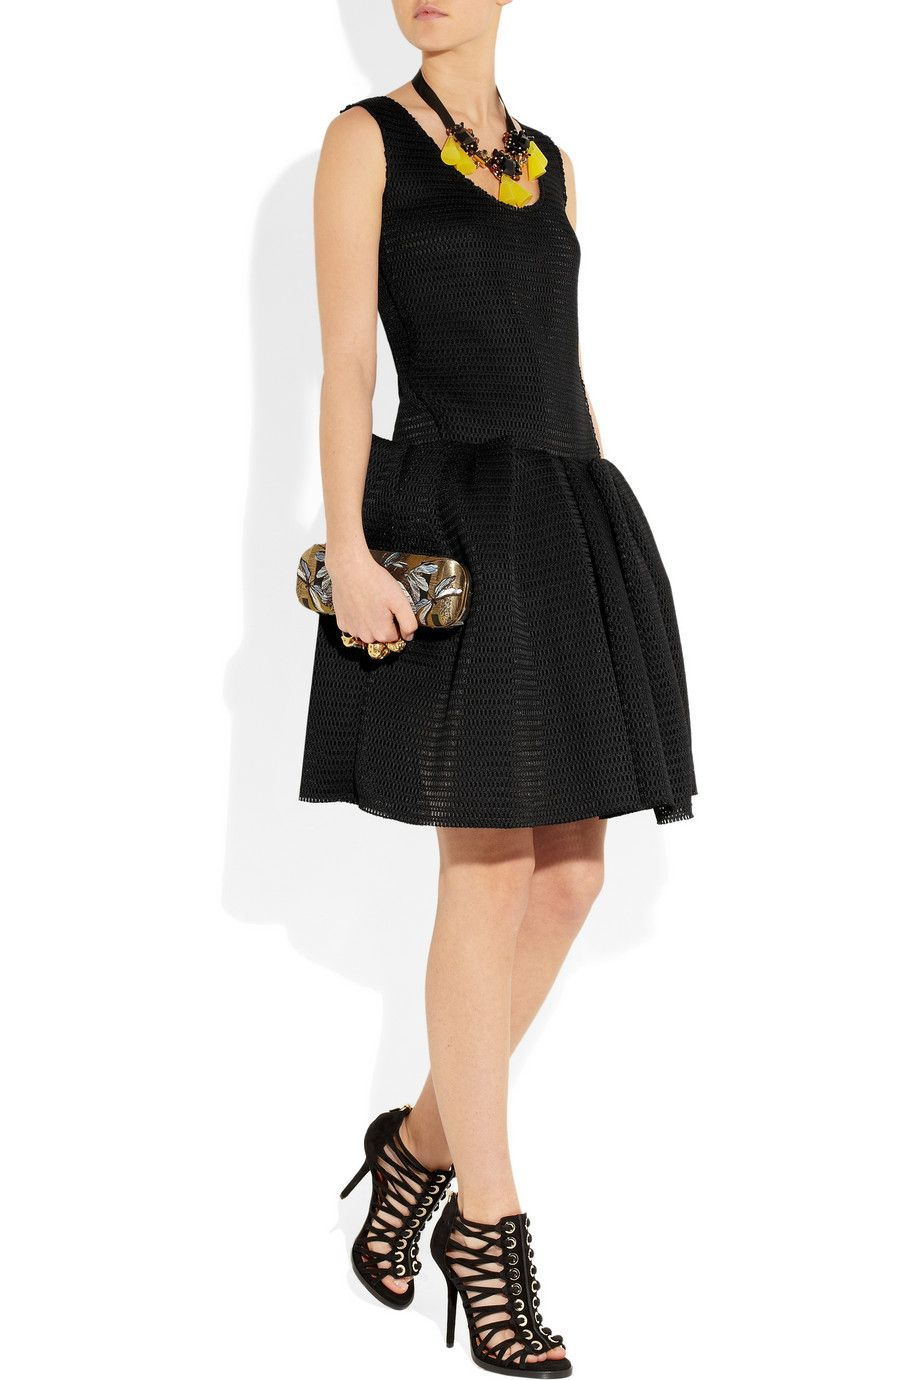 Lanvin Pleated mesh dress (With